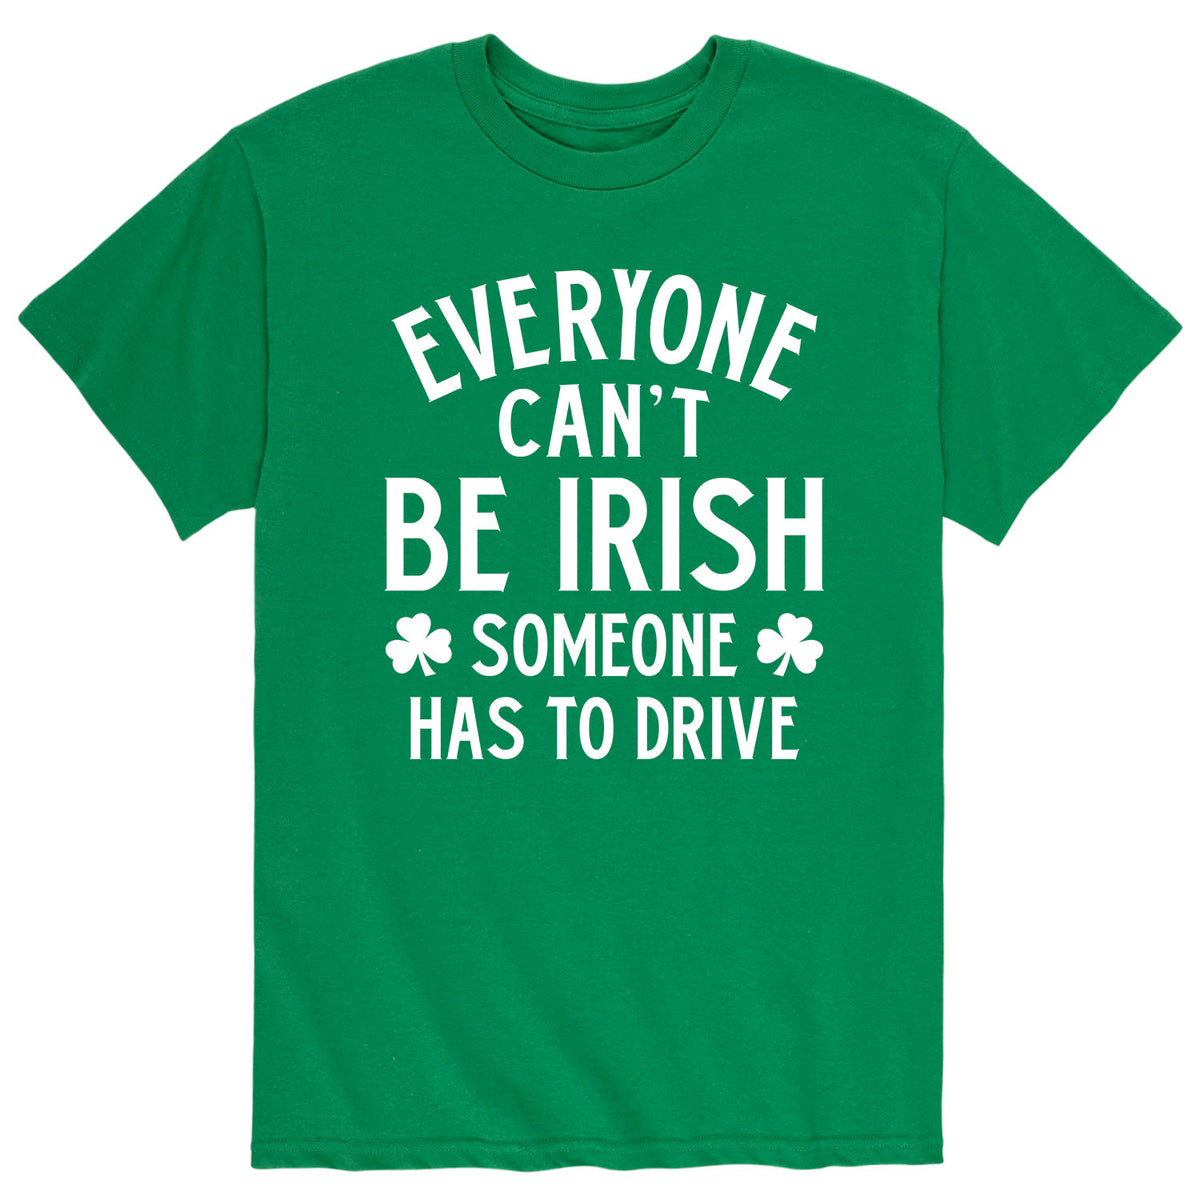 Everyone Can't Be Irish - Men's Short Sleeve T-Shirt